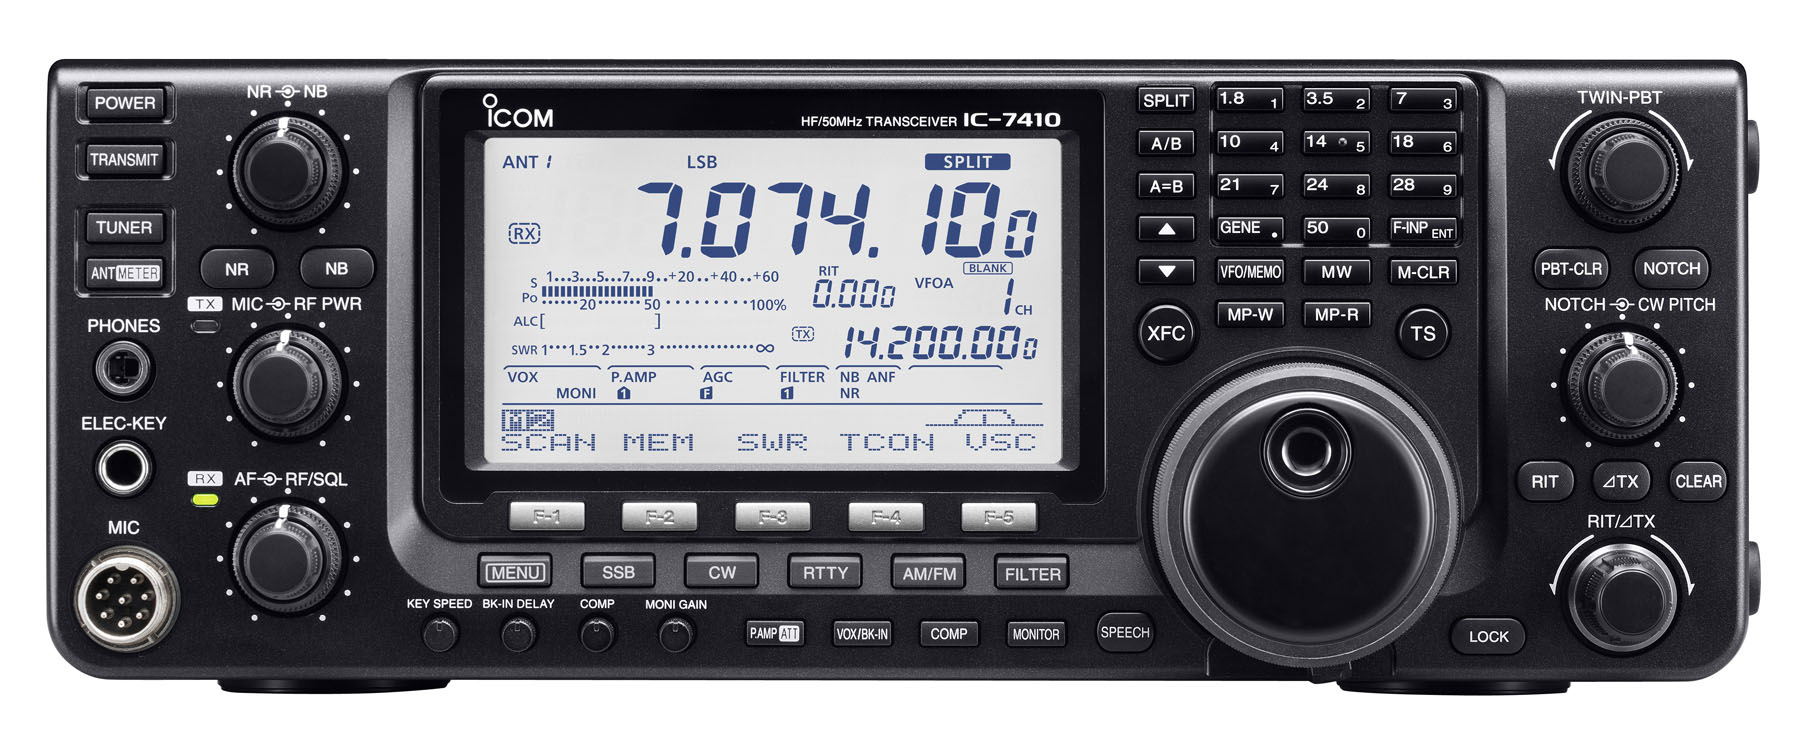 IC-7410 HF/50MHz Transceiver - Features - Icom America